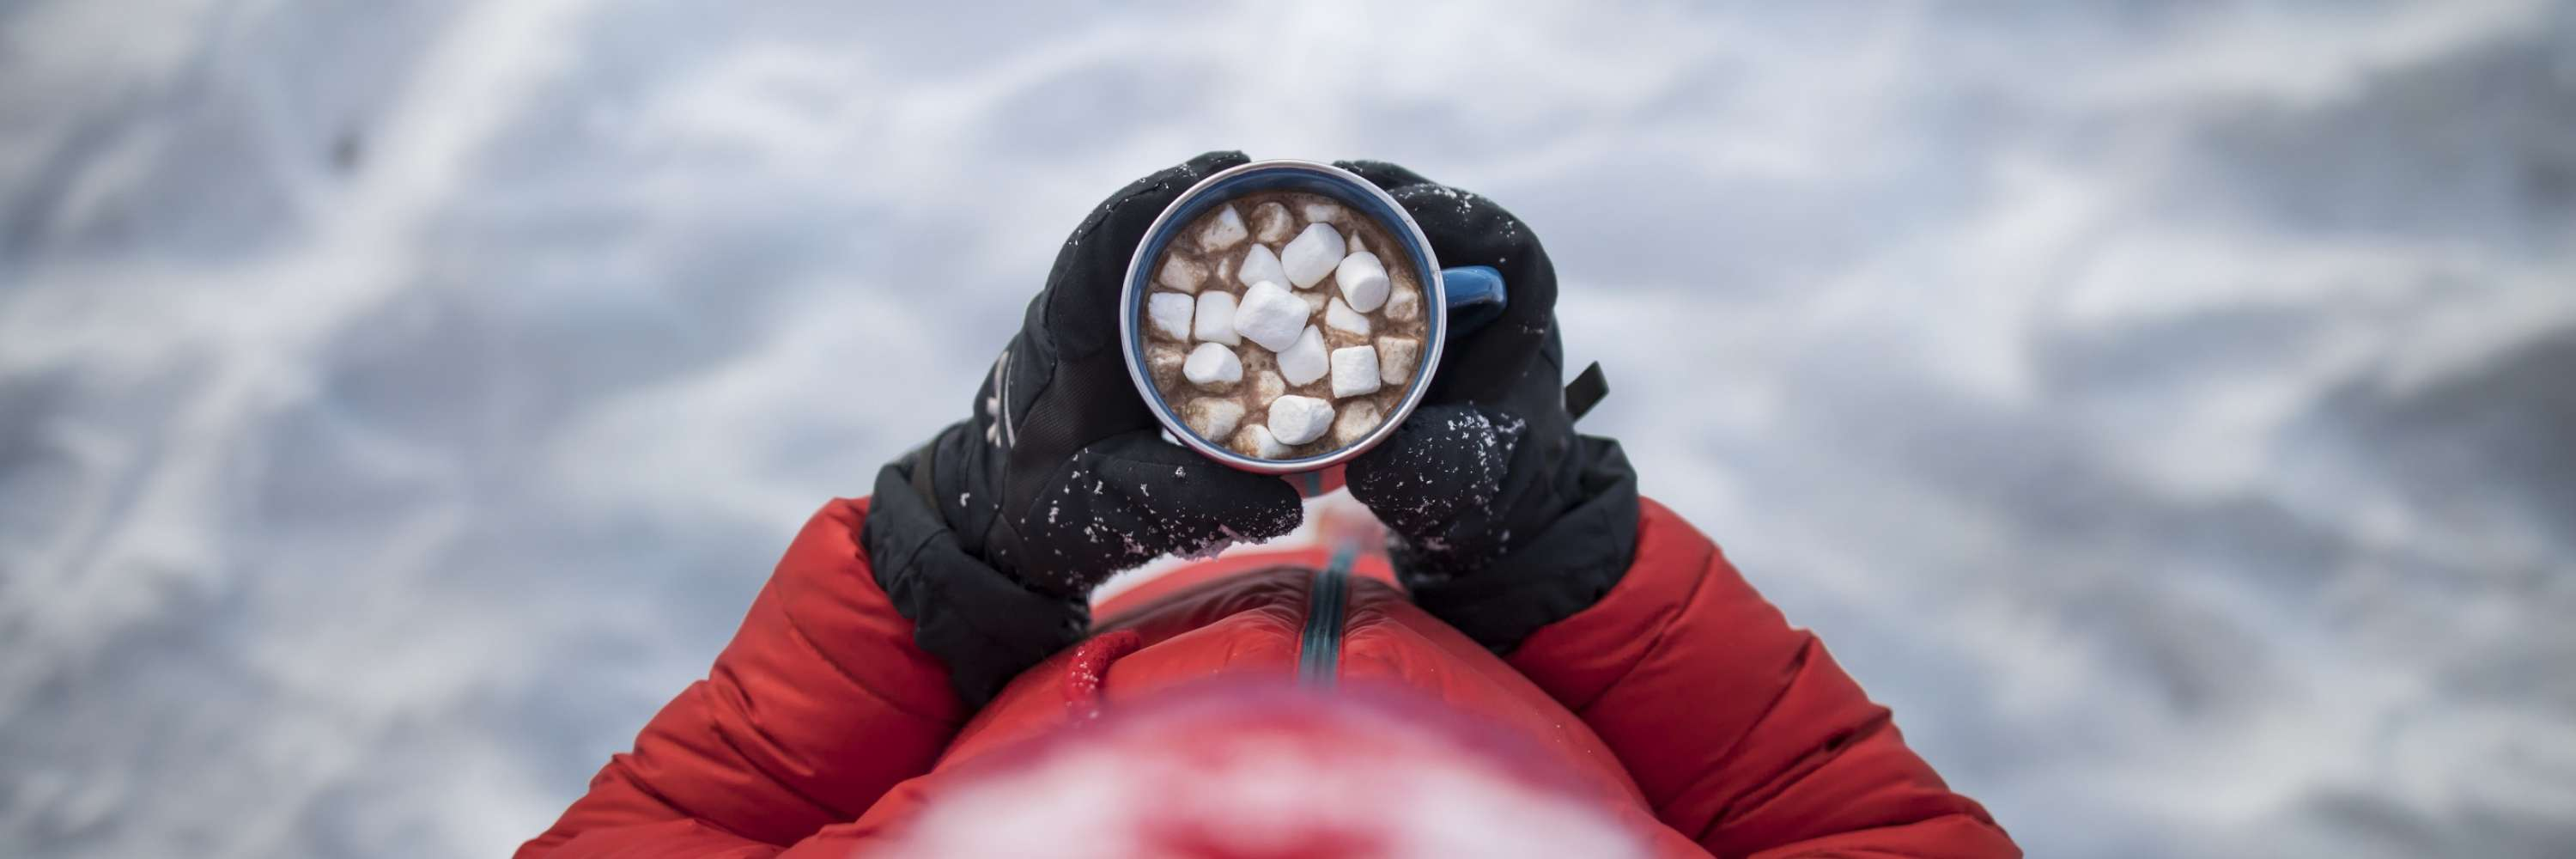 child dressed in red holding hot cooking, view looking down, snow on the ground, marshmallows in hot coco